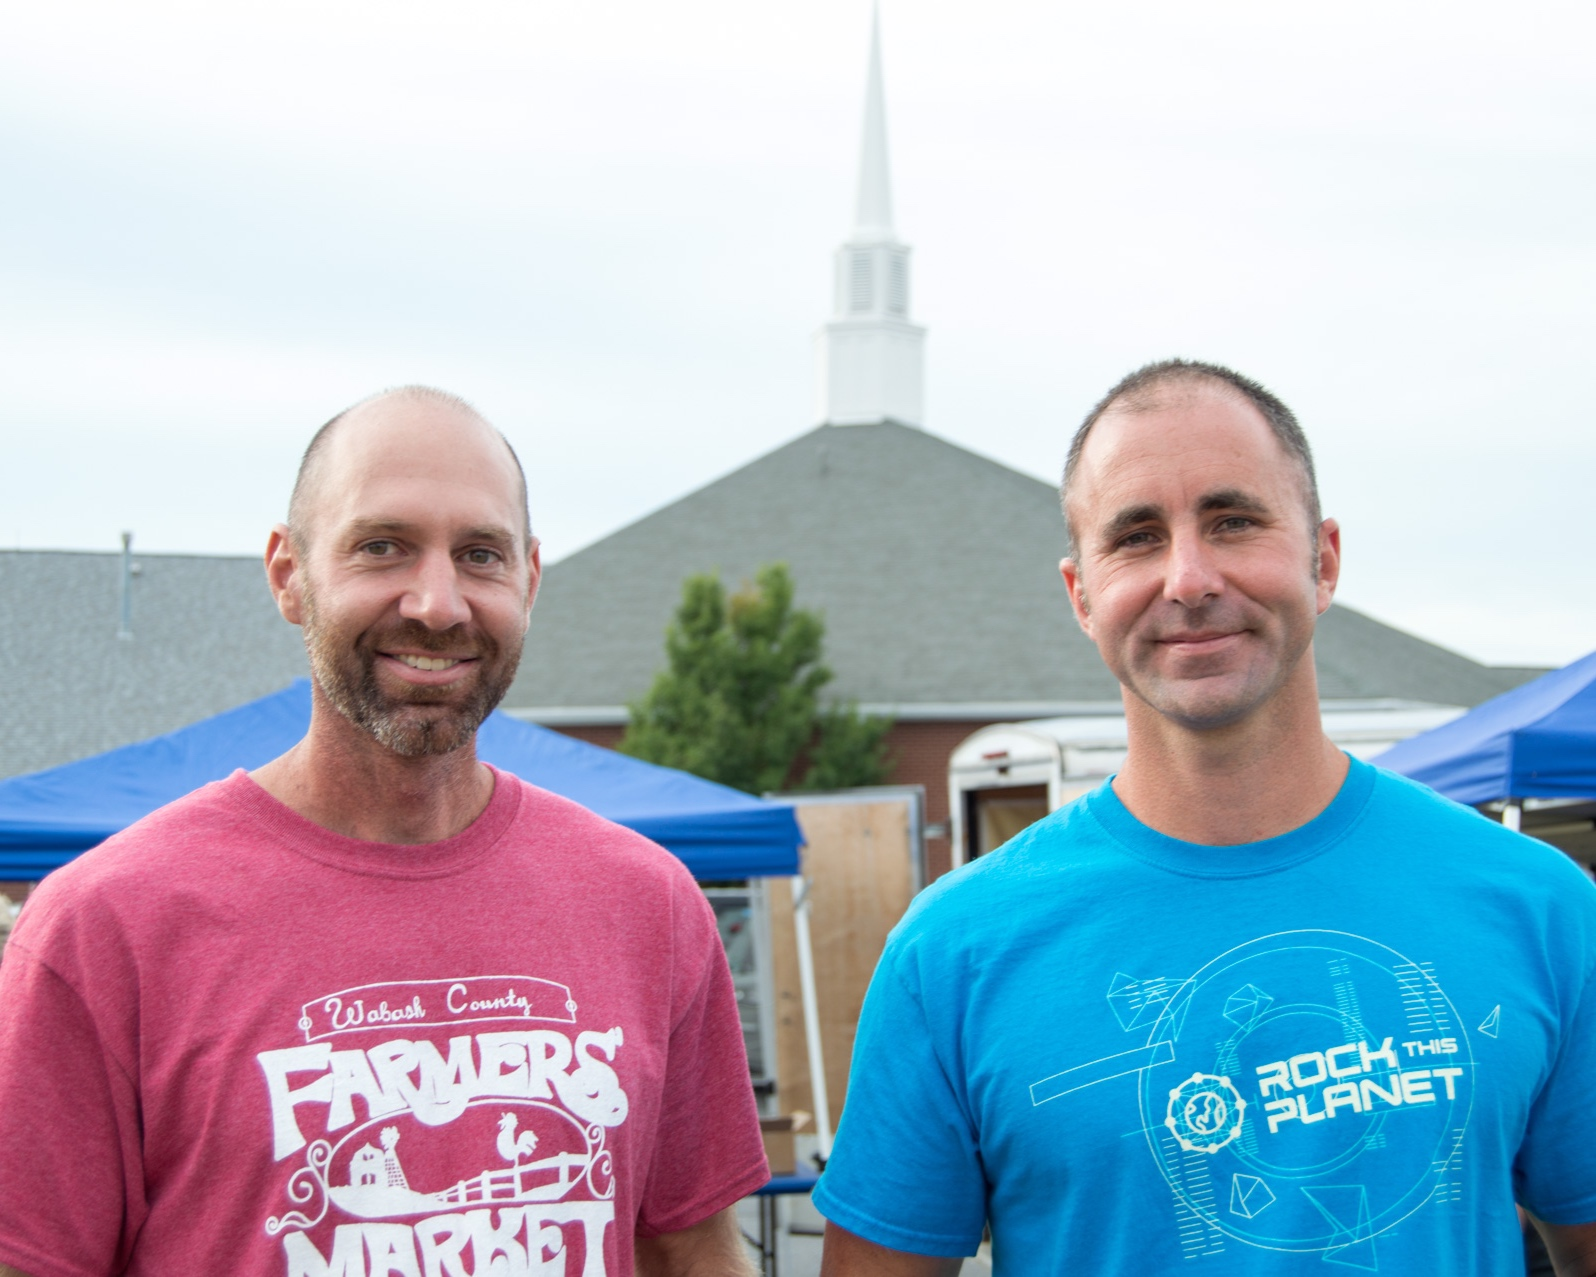 MEN'S MINISTRY - The Bachelor Creek Men's Ministry exists to equip Men with the resources necessary to grow deep roots in the Lord. We invite you to join us and participate in the many opportunities and outings throughout the year.